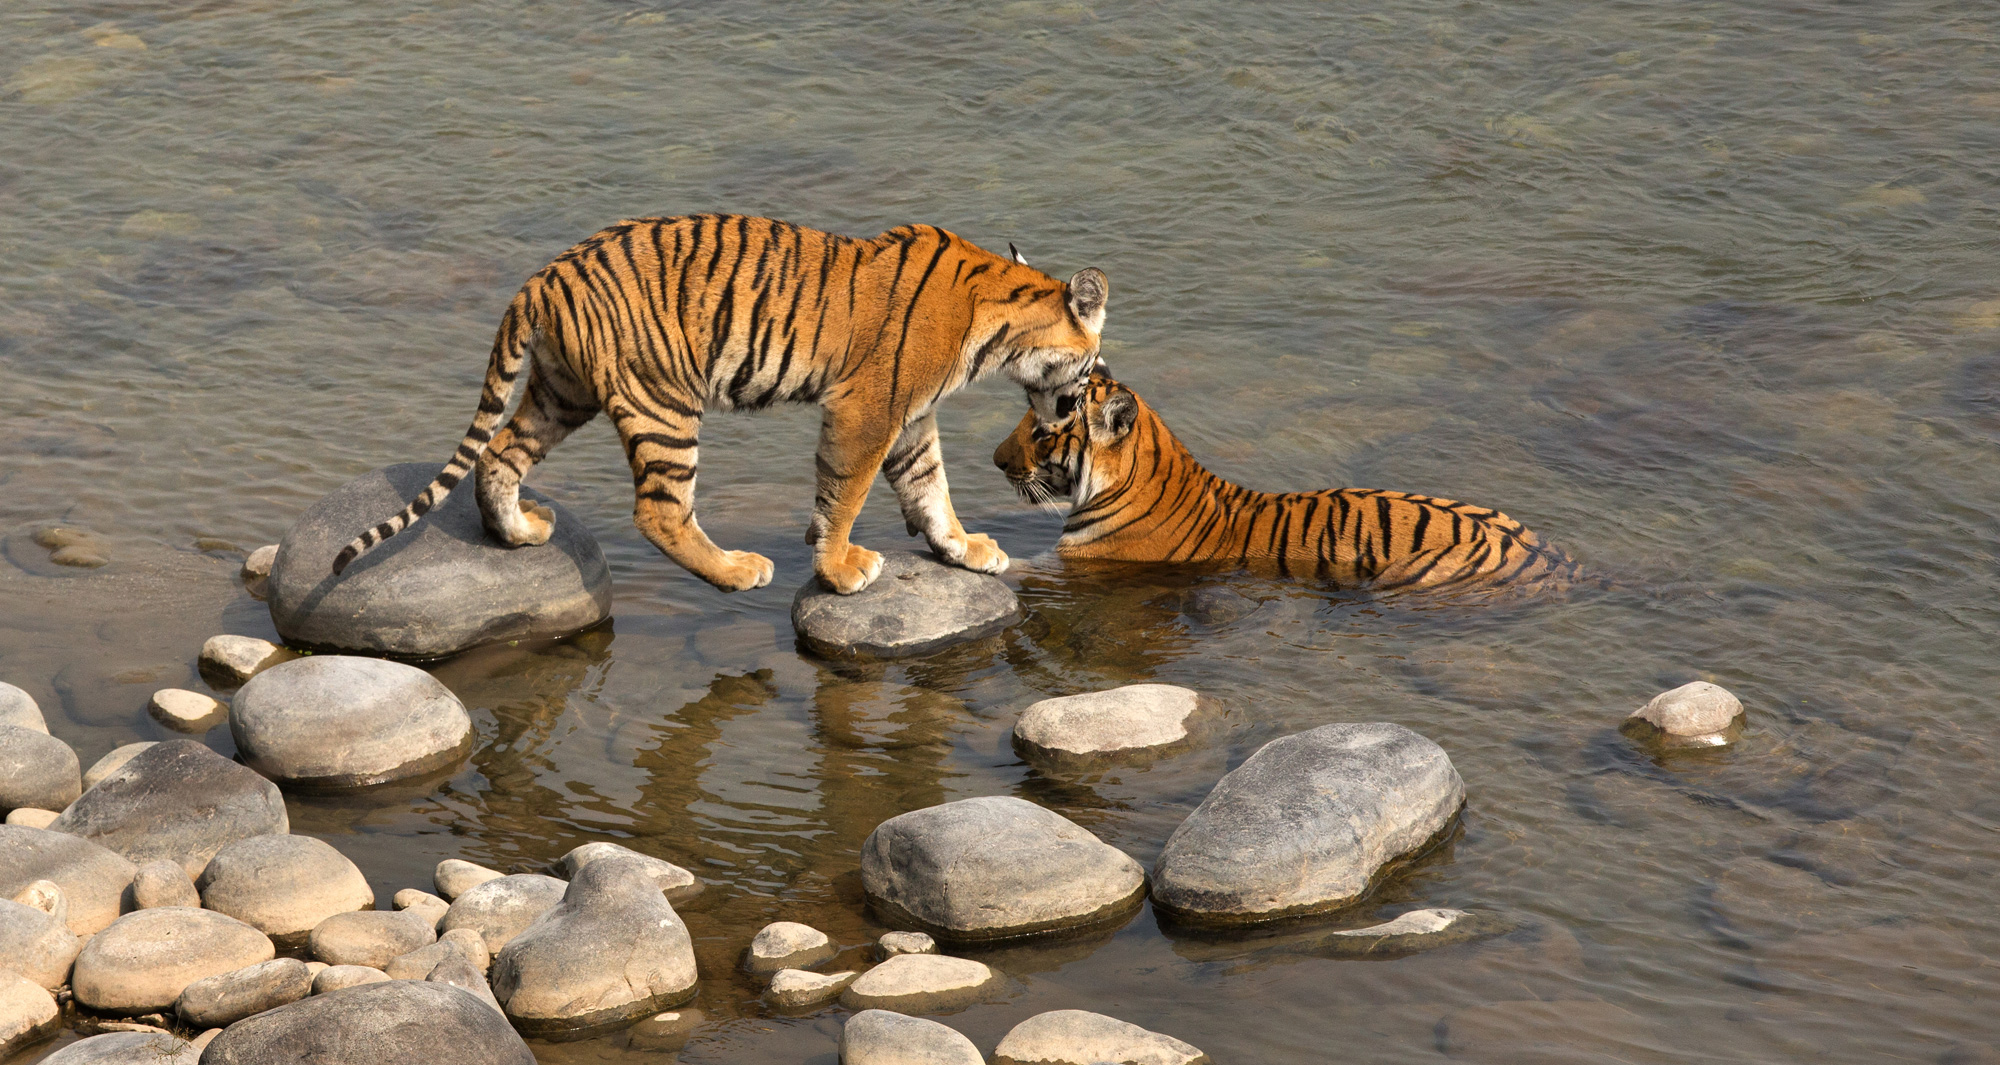 A tigress cub walking to its mother at the Jim Corbett Tiger Reserve in Uttarakhand